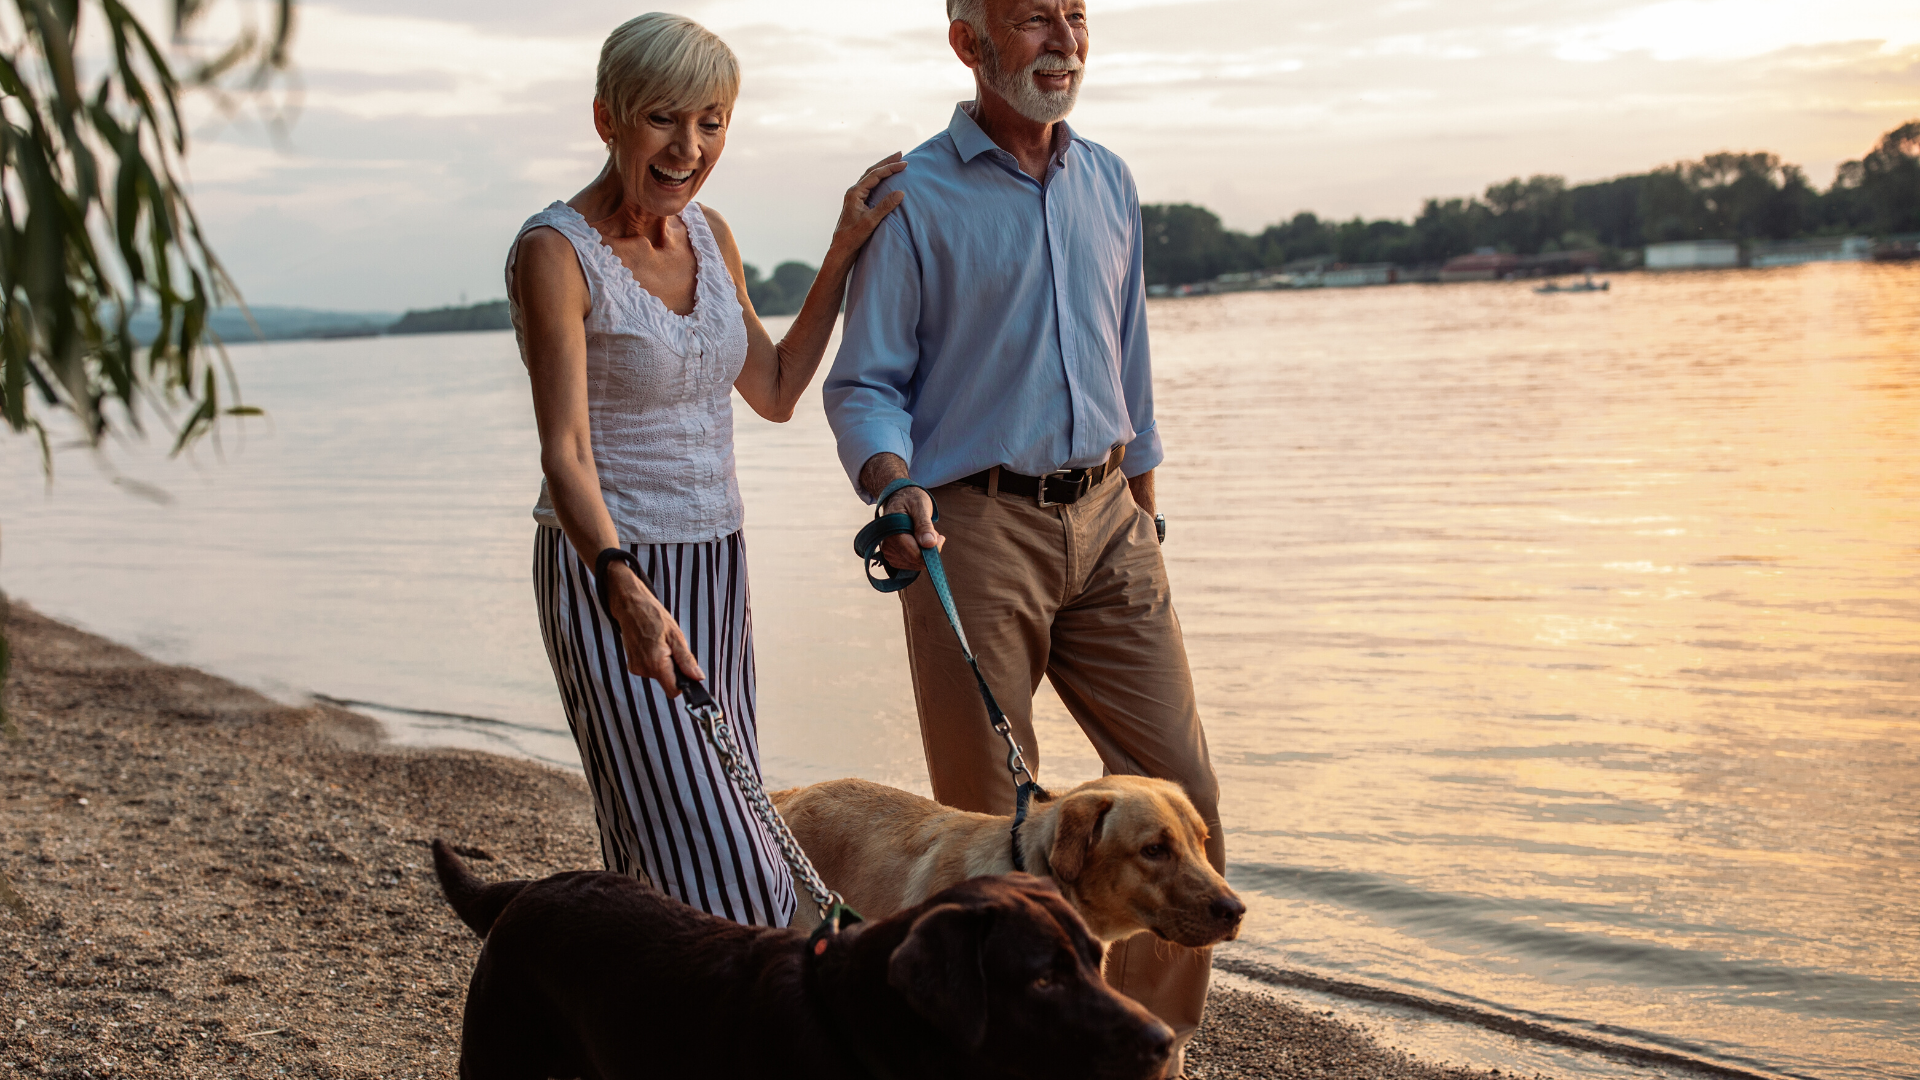 Support Healthy Aging: Making Good Health-Related Choices